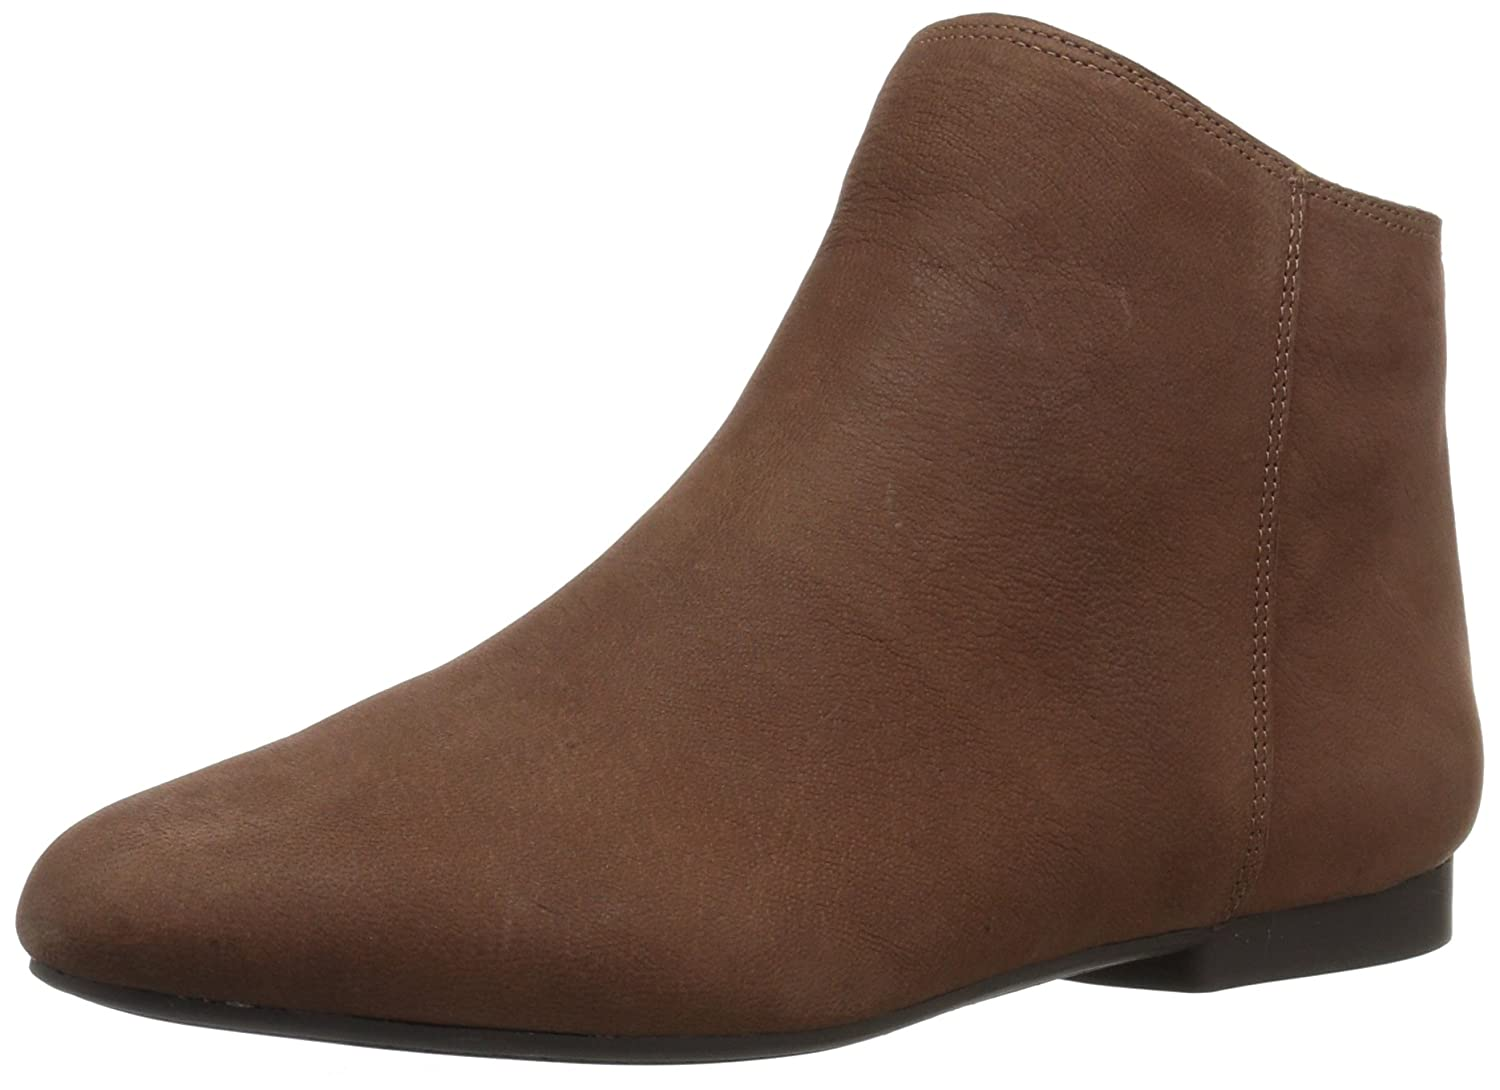 Lucky Brand Women's Gaines Ankle Boot B0727SF3SW 7 B(M) US|Toffee